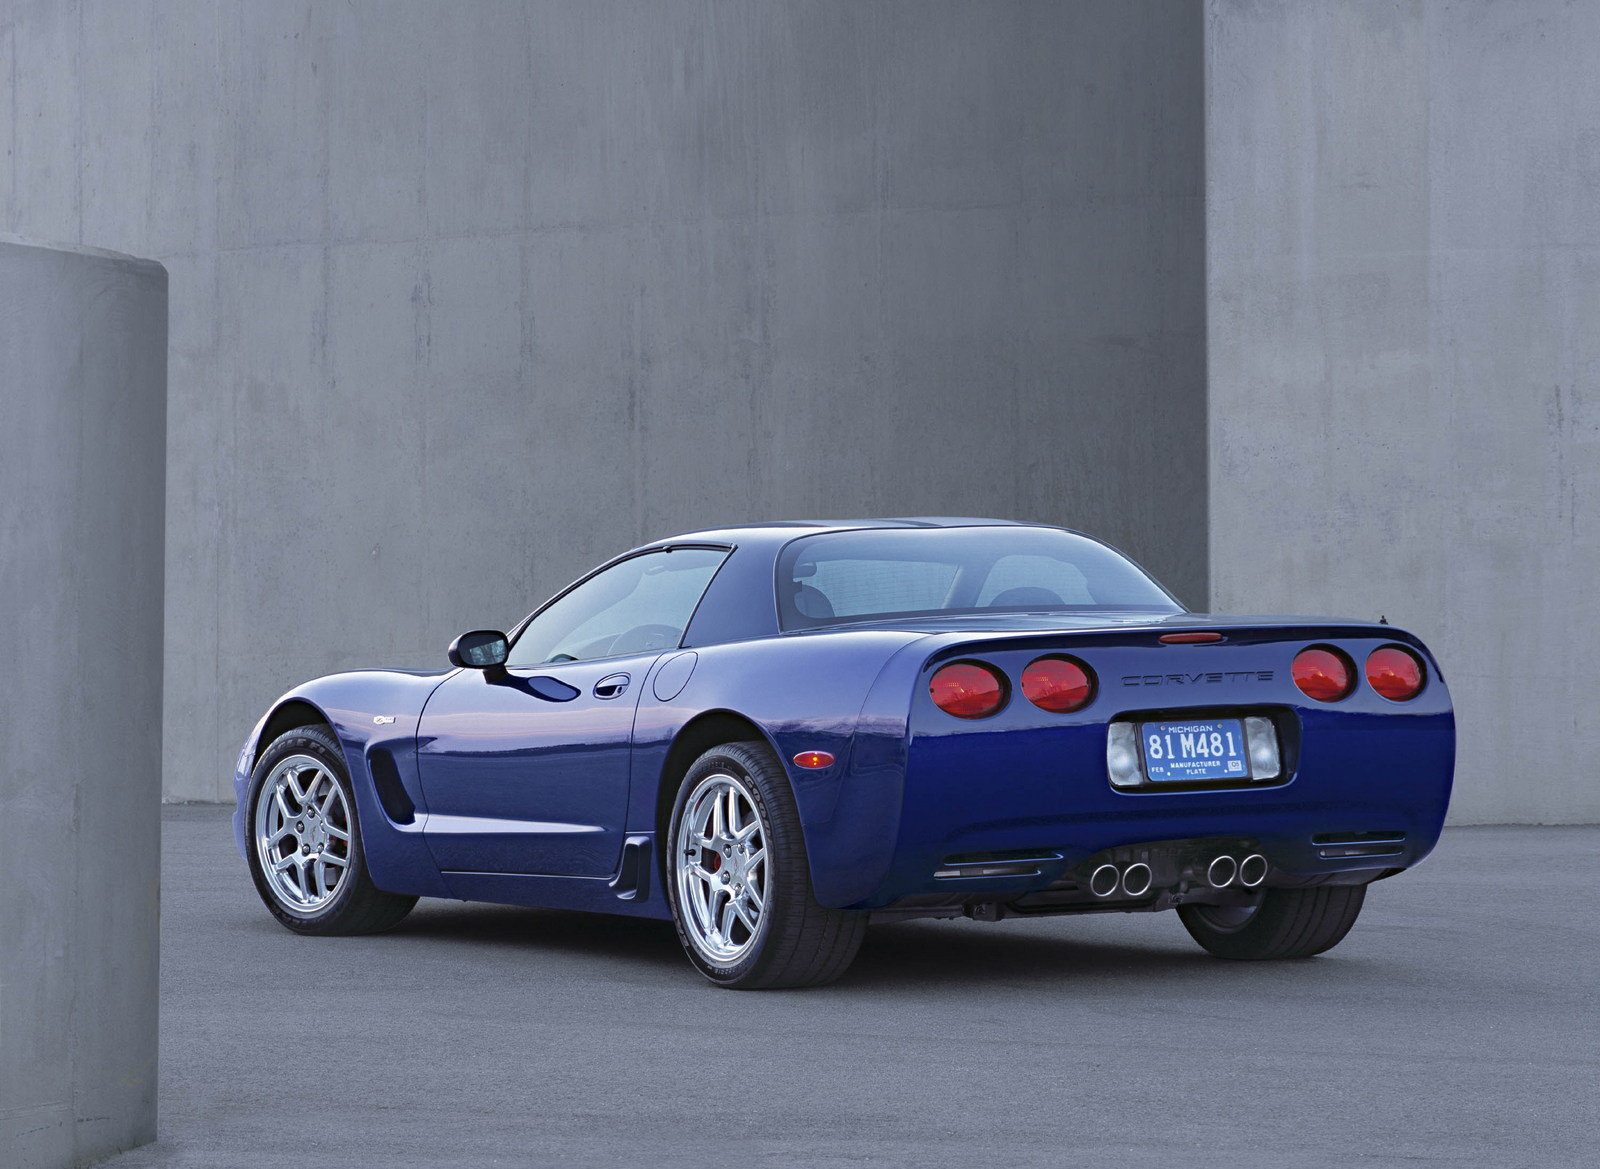 2001 2004 chevrolet corvette z06 c5 picture 51032 car review top speed. Black Bedroom Furniture Sets. Home Design Ideas